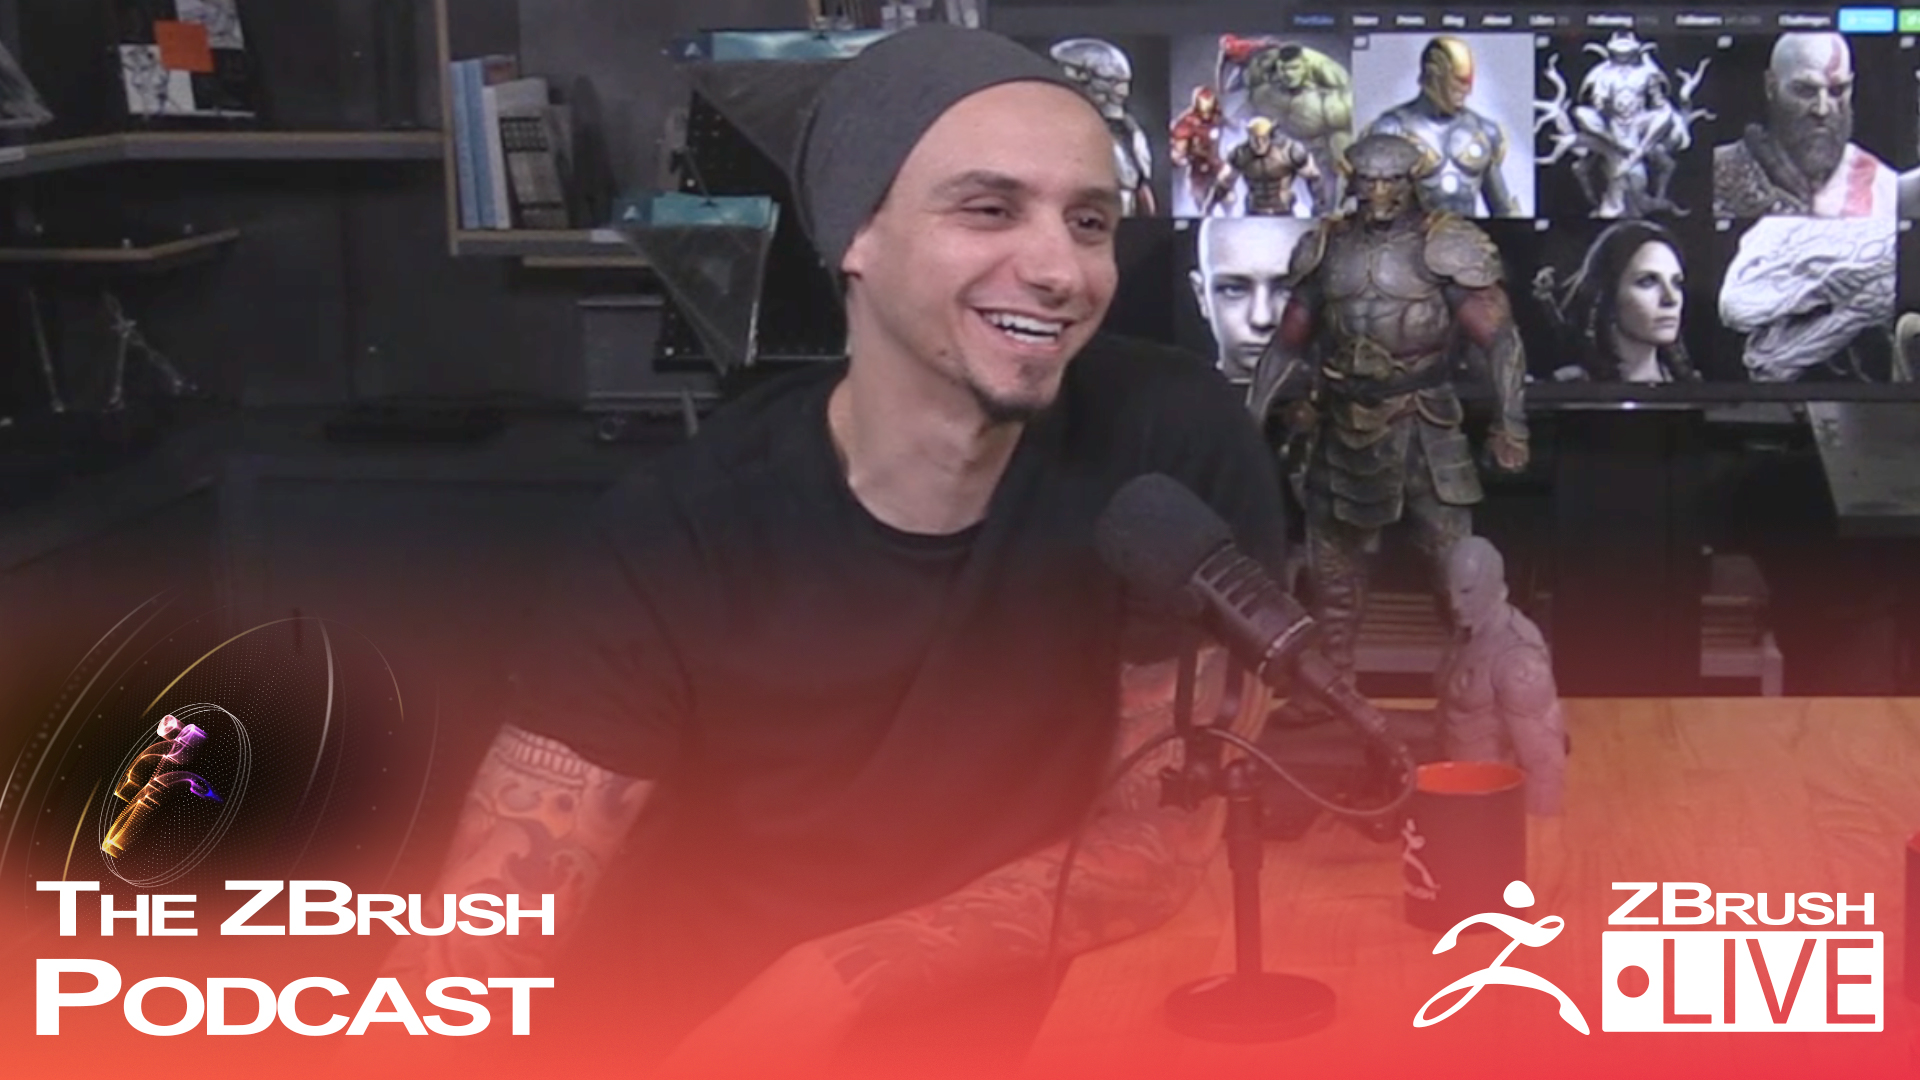 God of War Art Director Rafael Grassetti – The ZBrush Podcast Episode 24